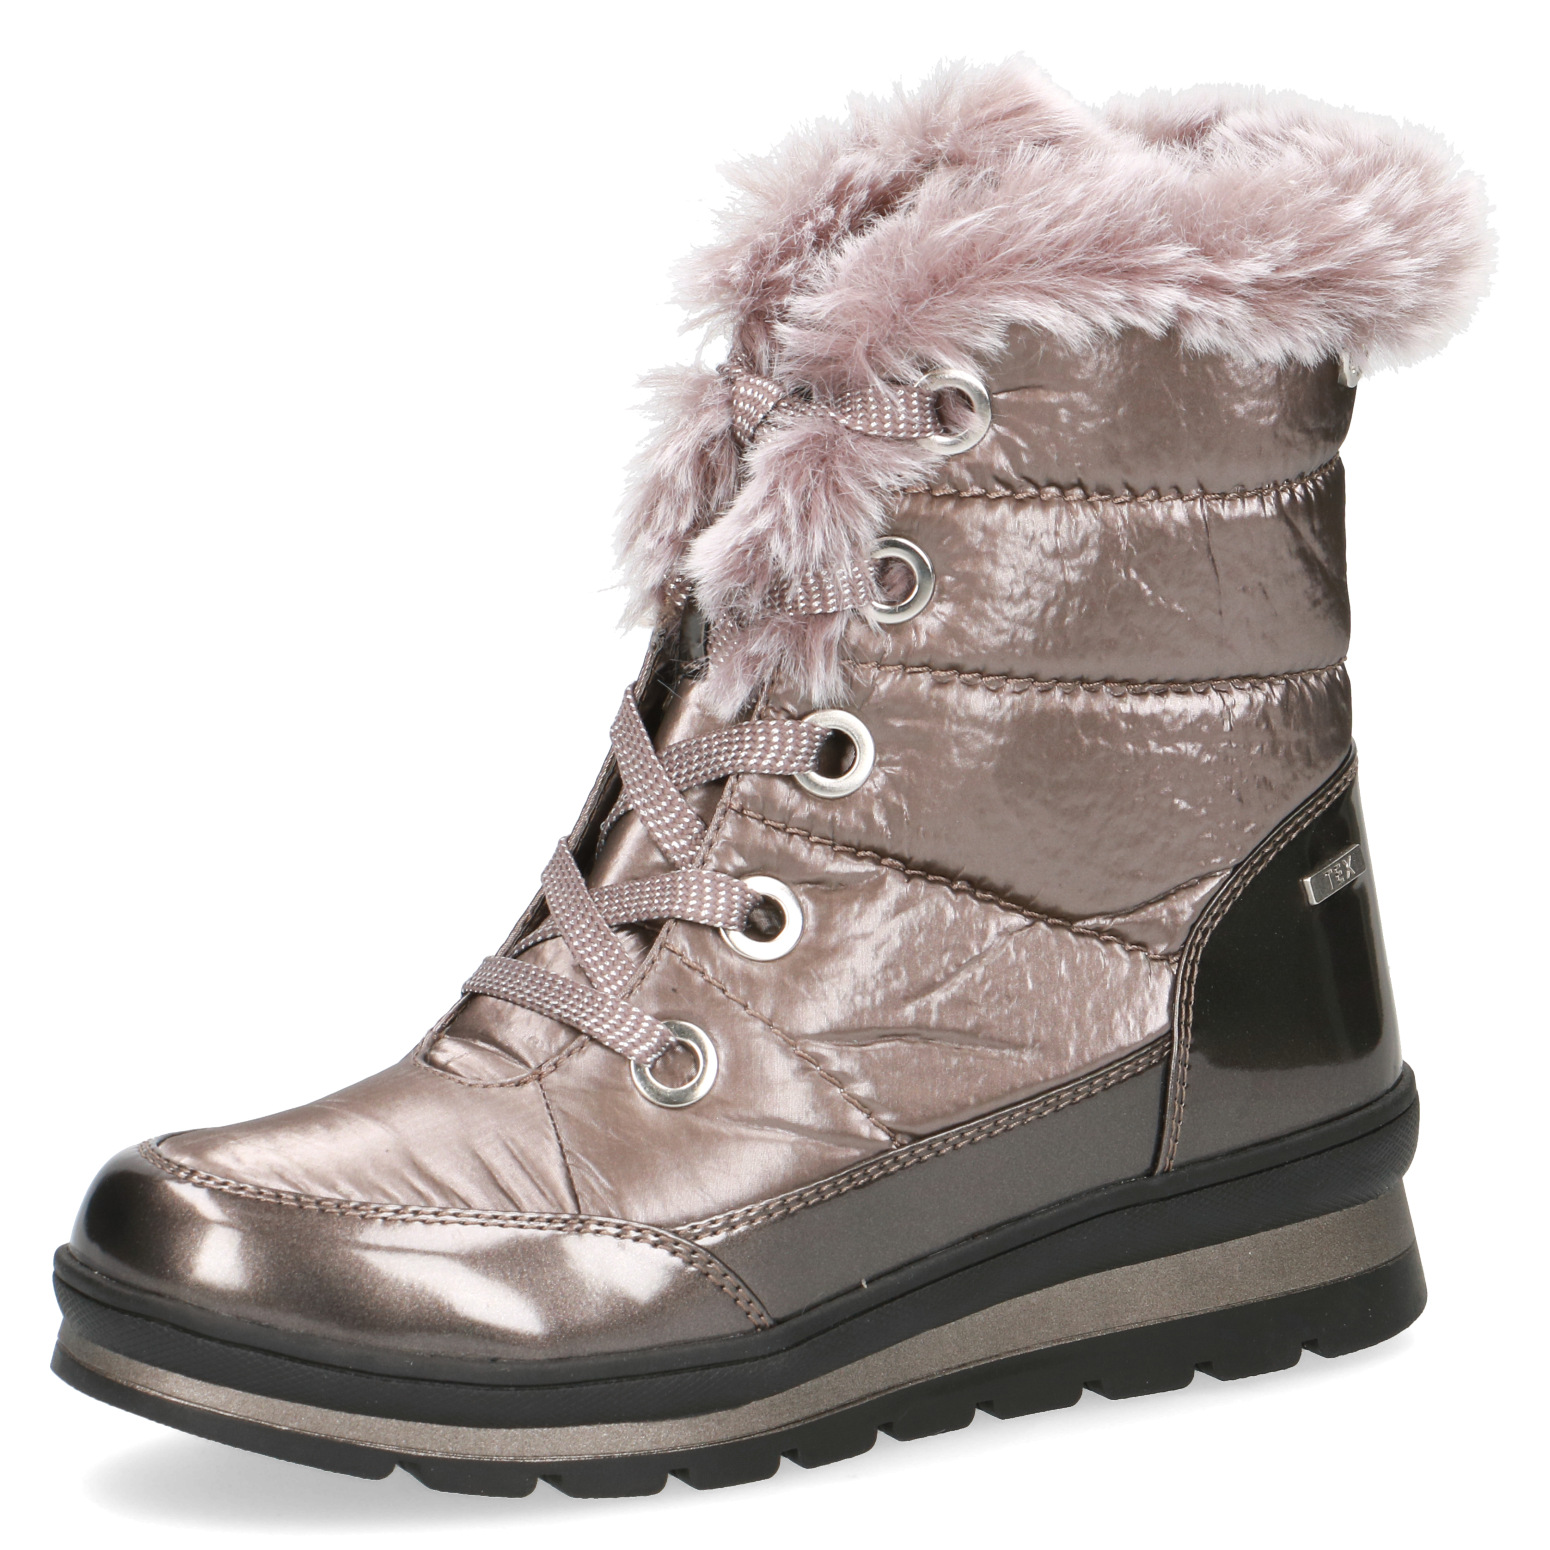 Caprice Adele Stone Winter Boot